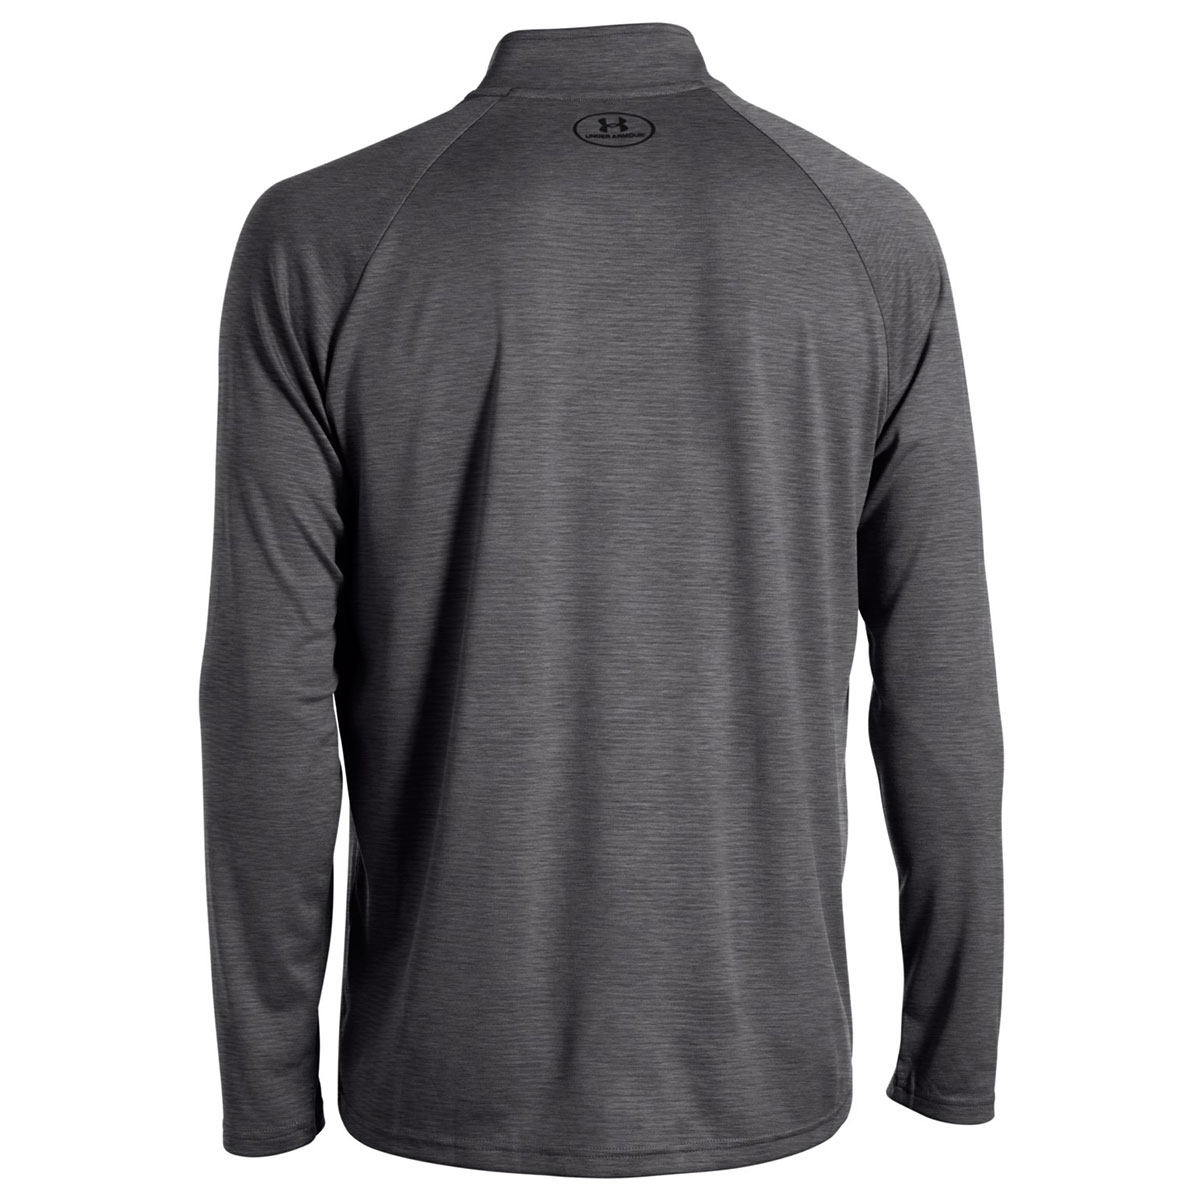 Under-Armour-Mens-UA-Tech-1-4-Zip-Long-Sleeve-Top-Workout-Layer-27-OFF-RRP thumbnail 43